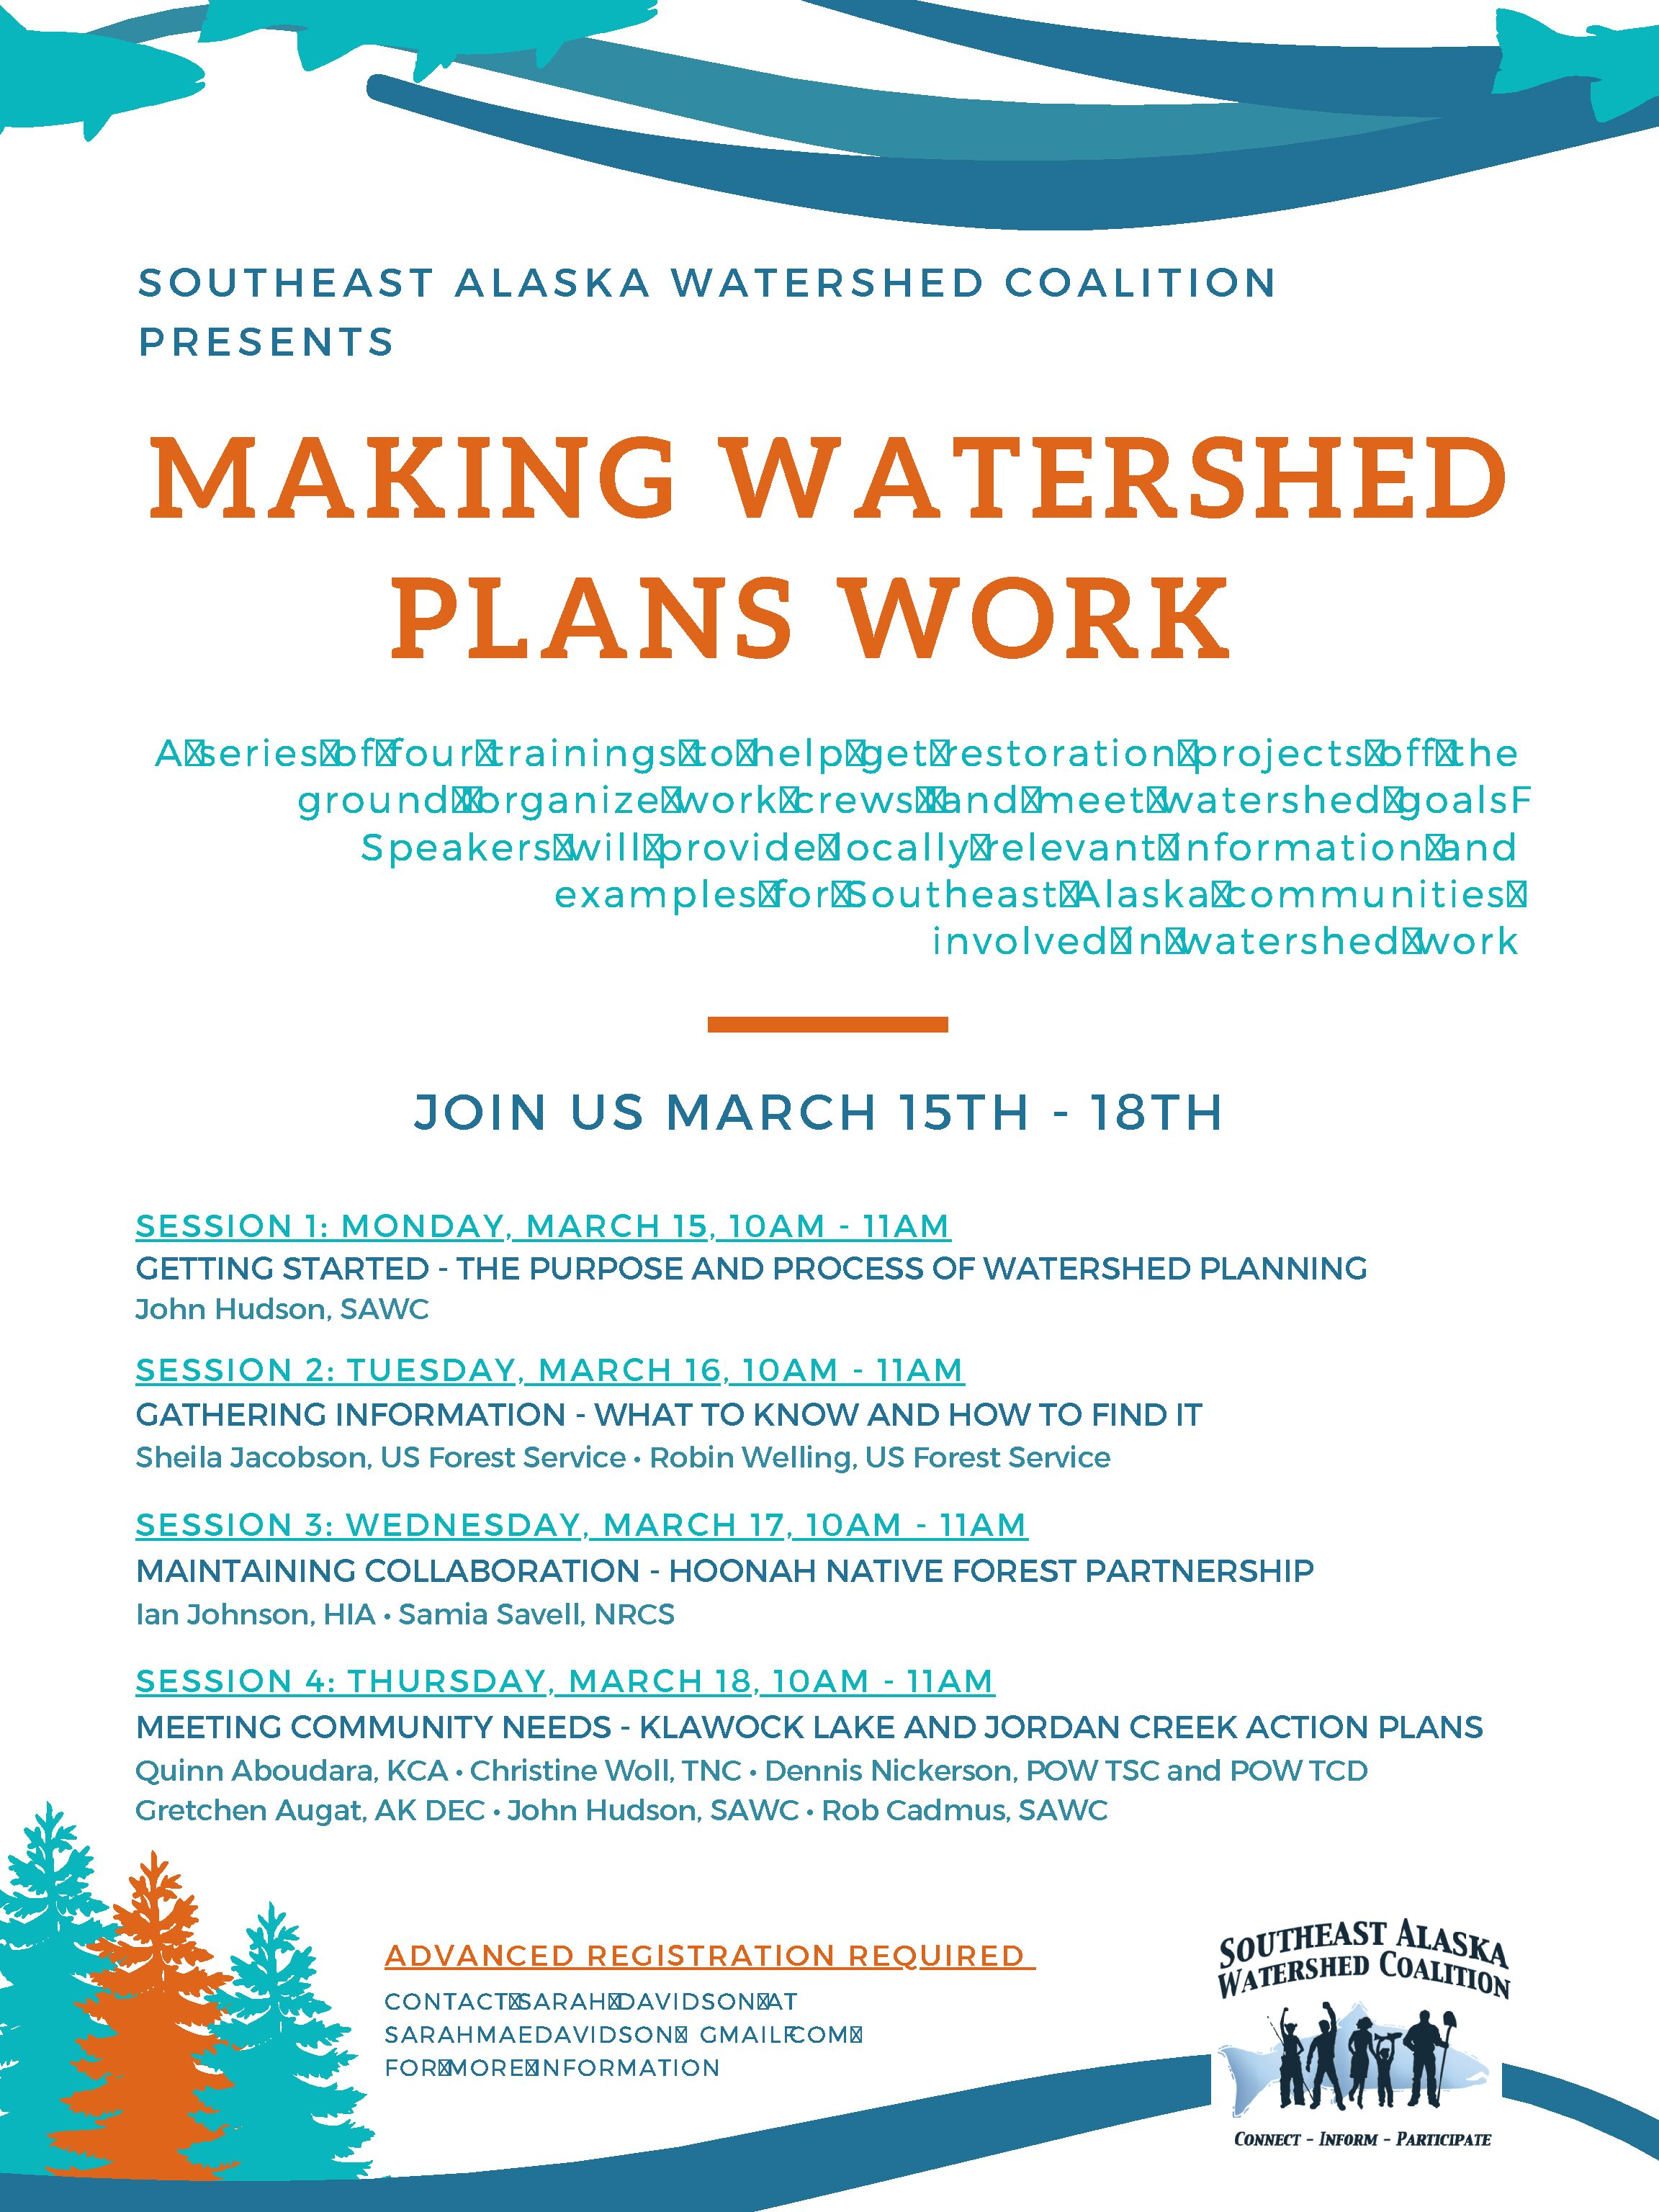 SAWC Presents: Making Watershed Plans Work